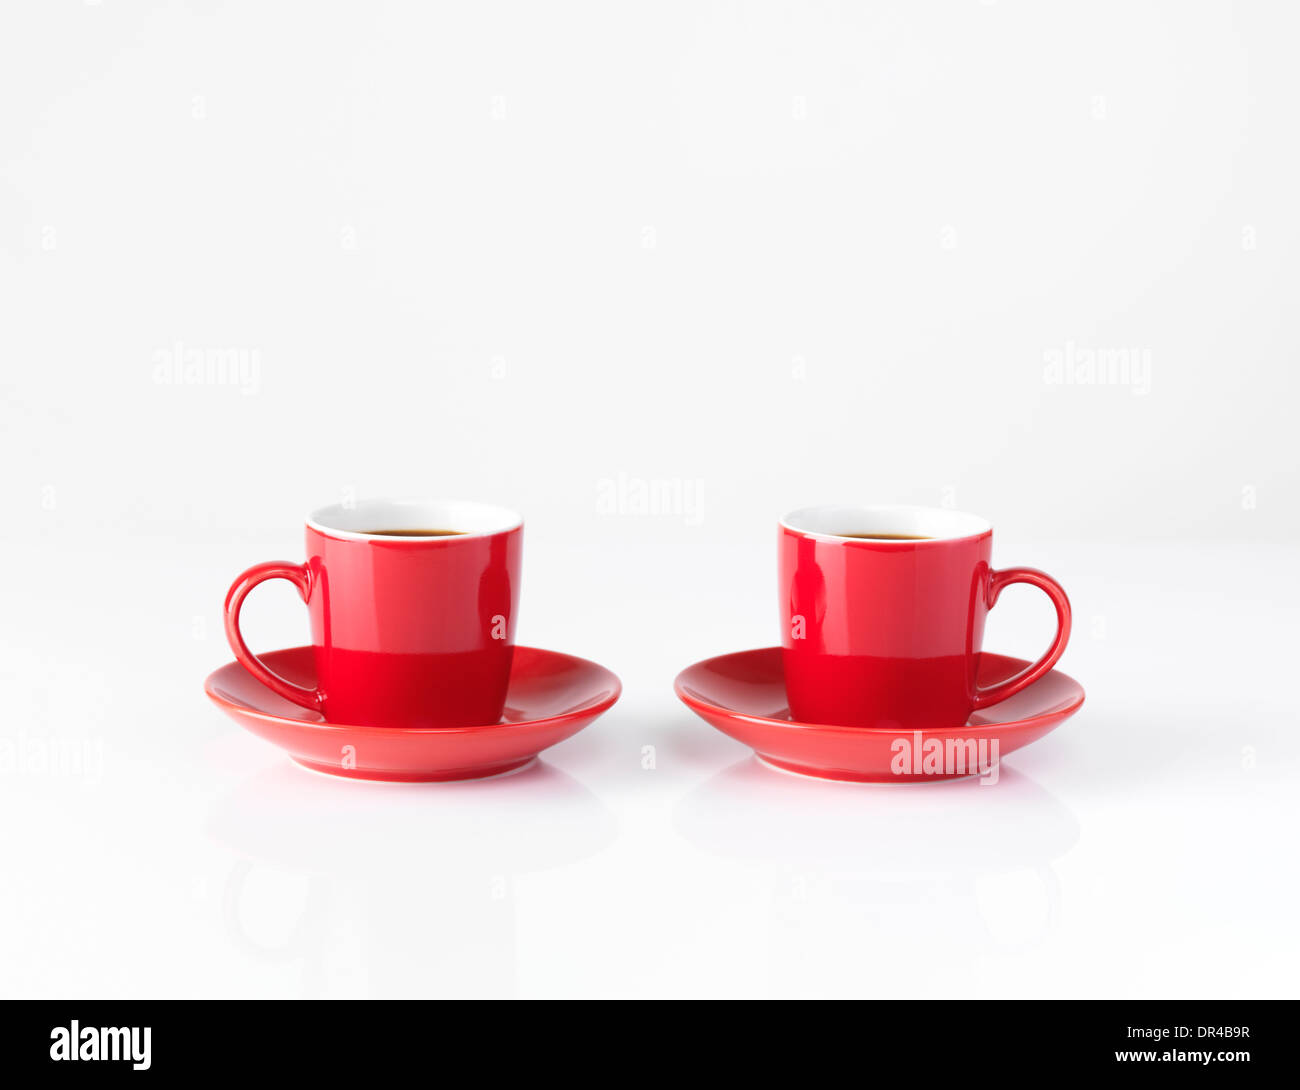 Two red small espresso coffee cups isolated on white background - Stock Image